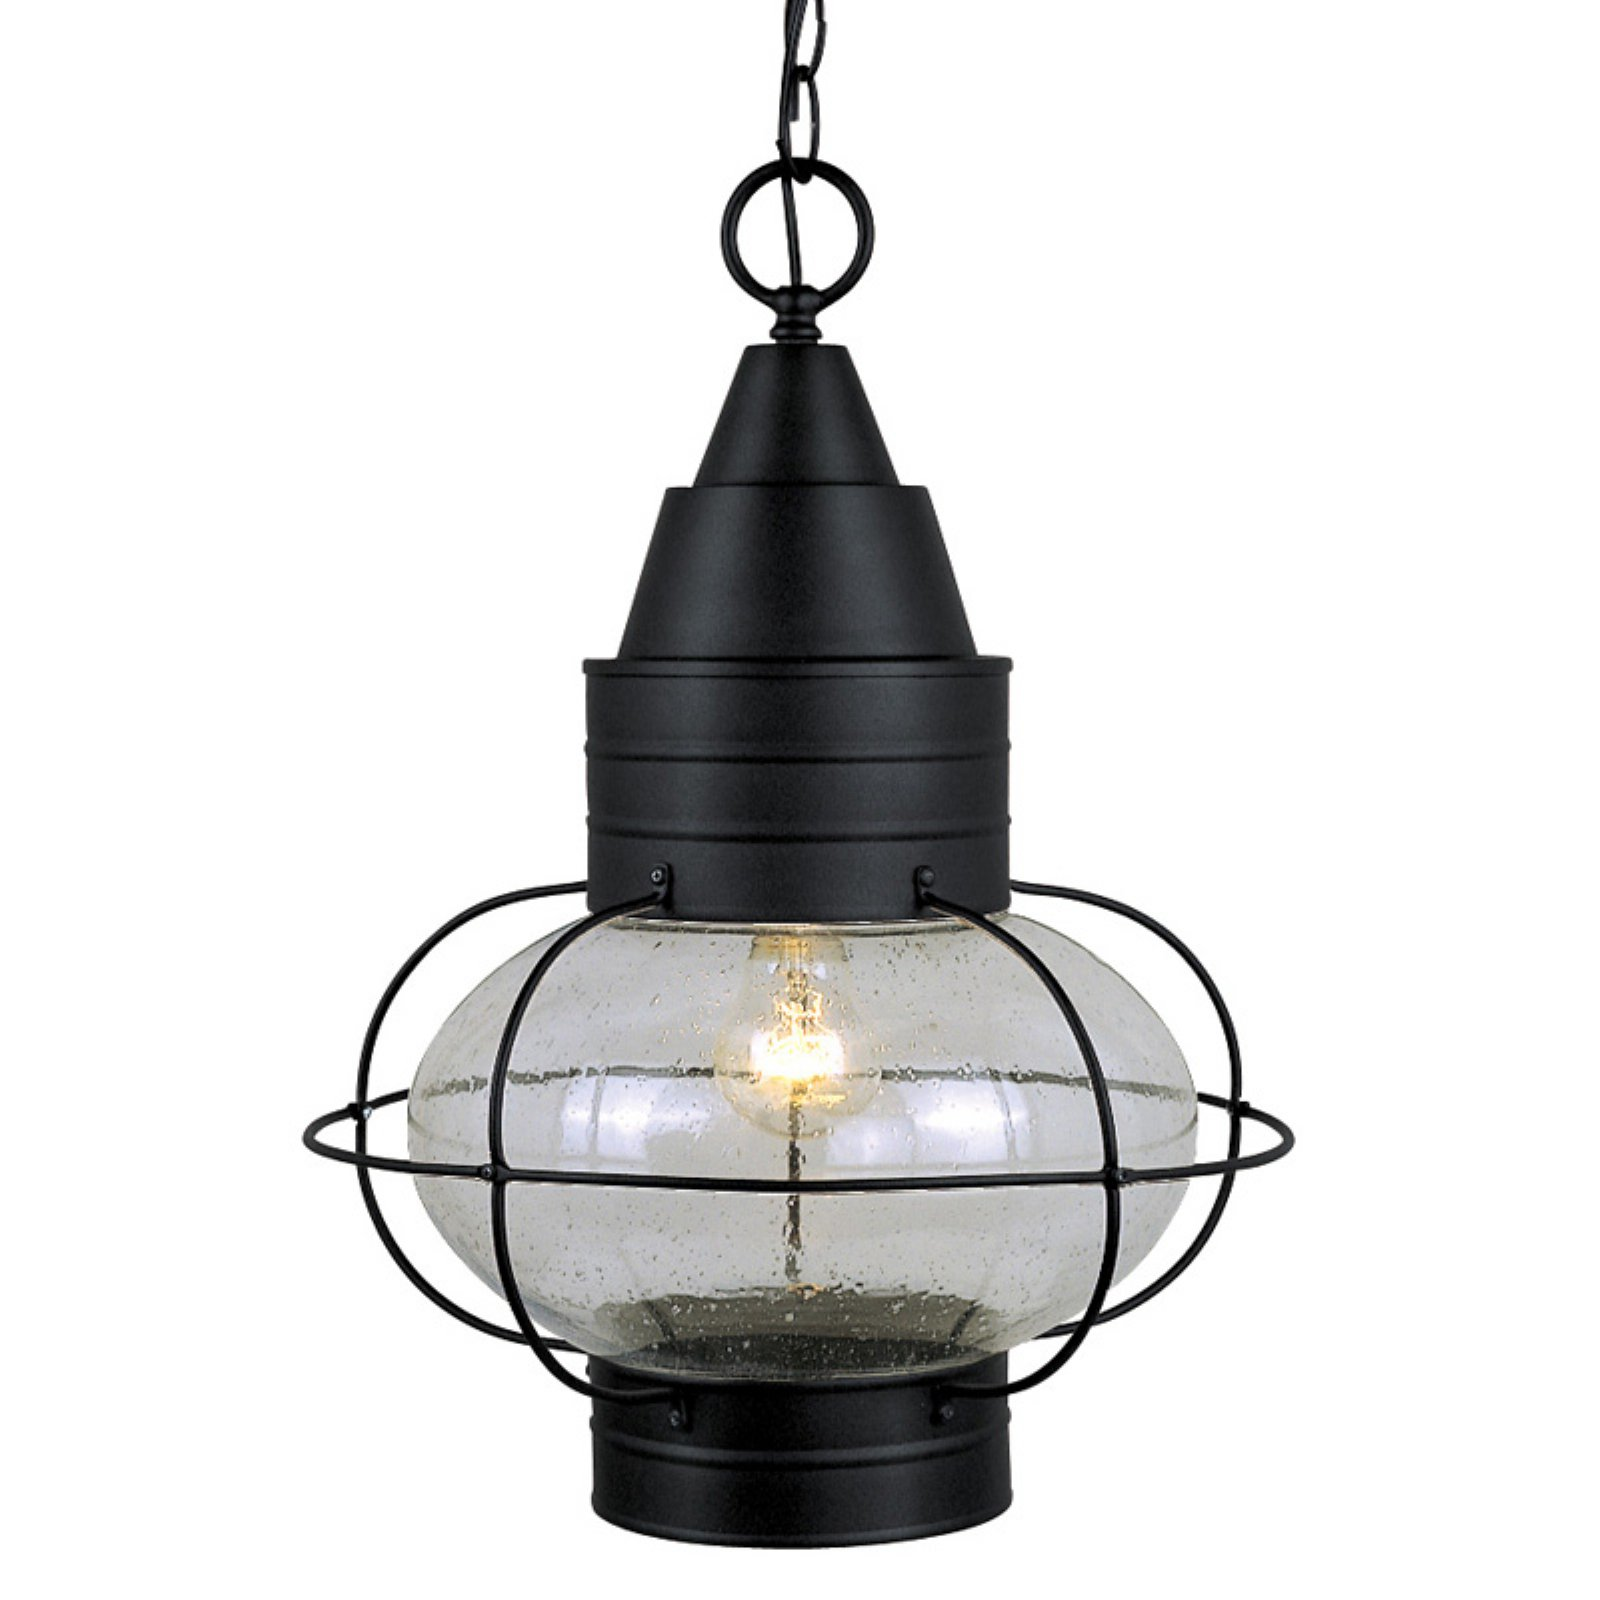 Vaxcel Chatham OD21836 Outdoor Pendant Light